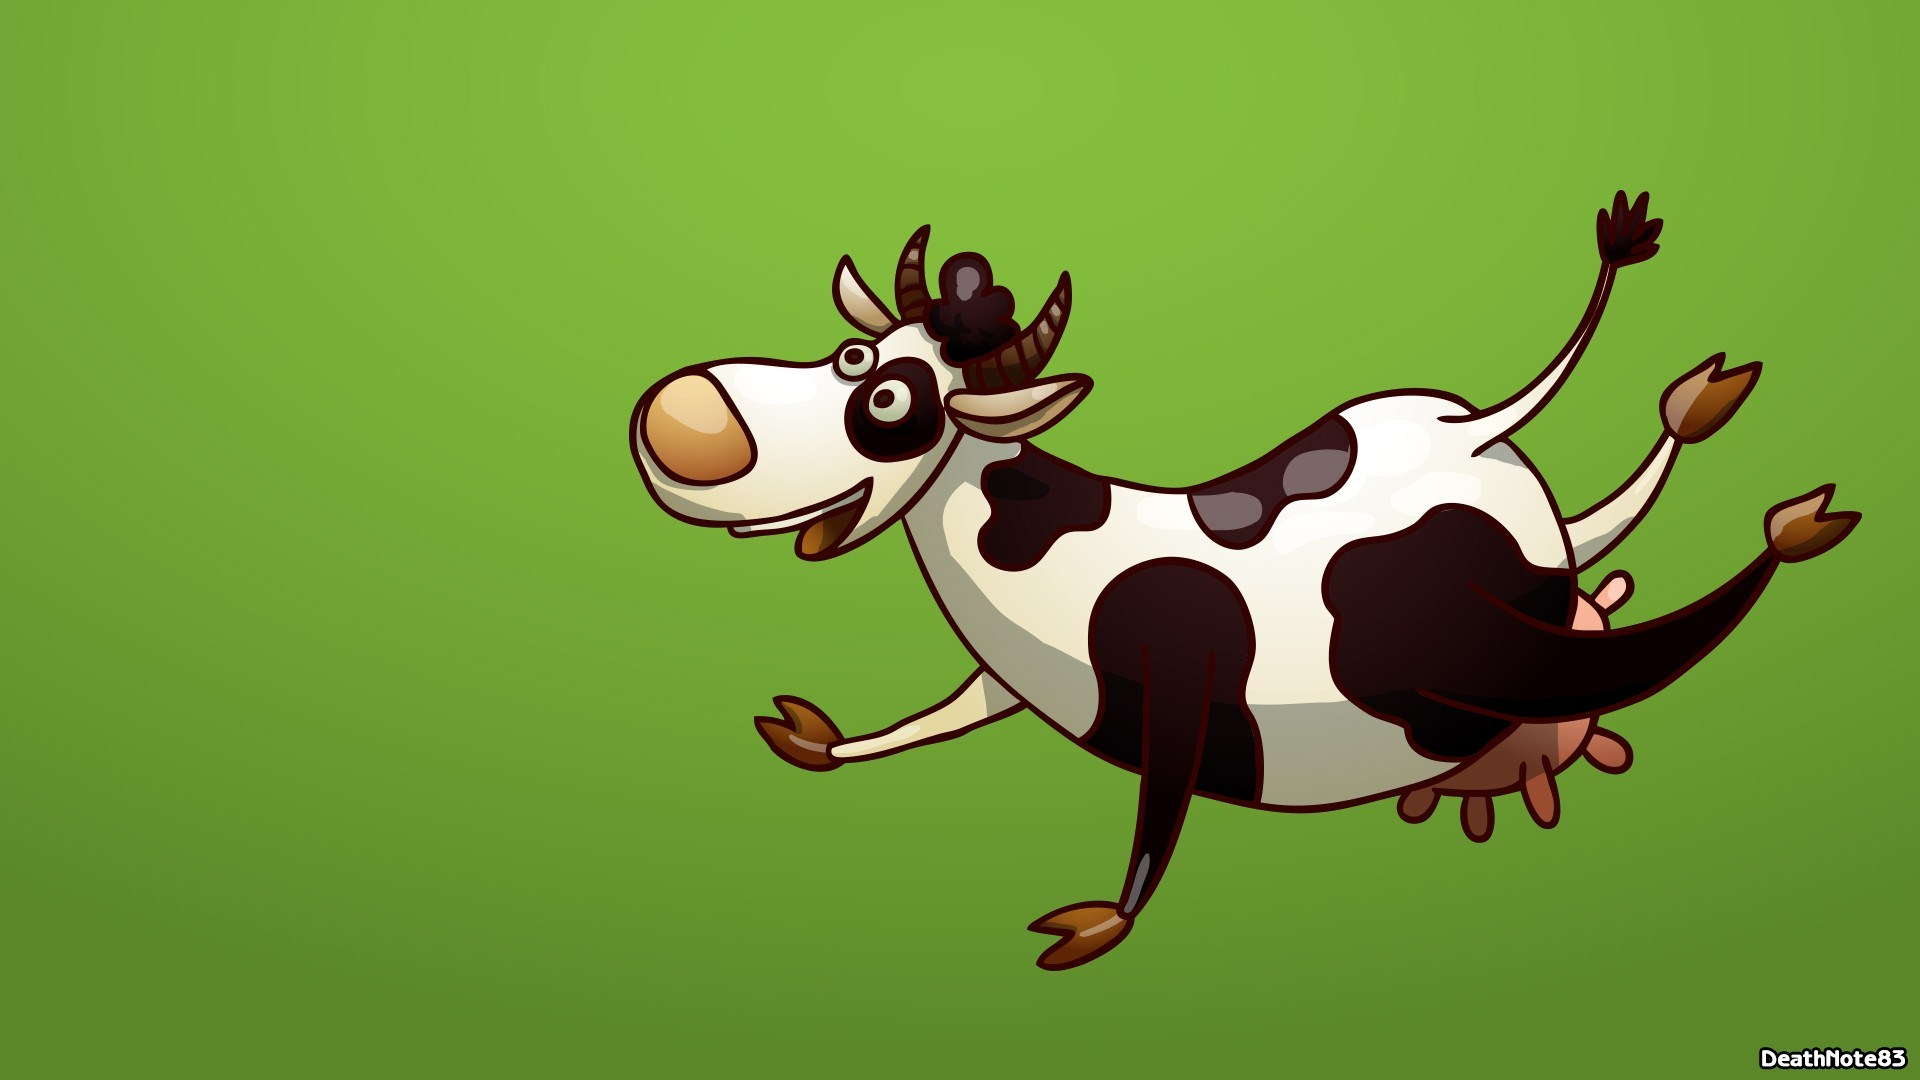 Cow Funny Cartoon HD Wallpaper